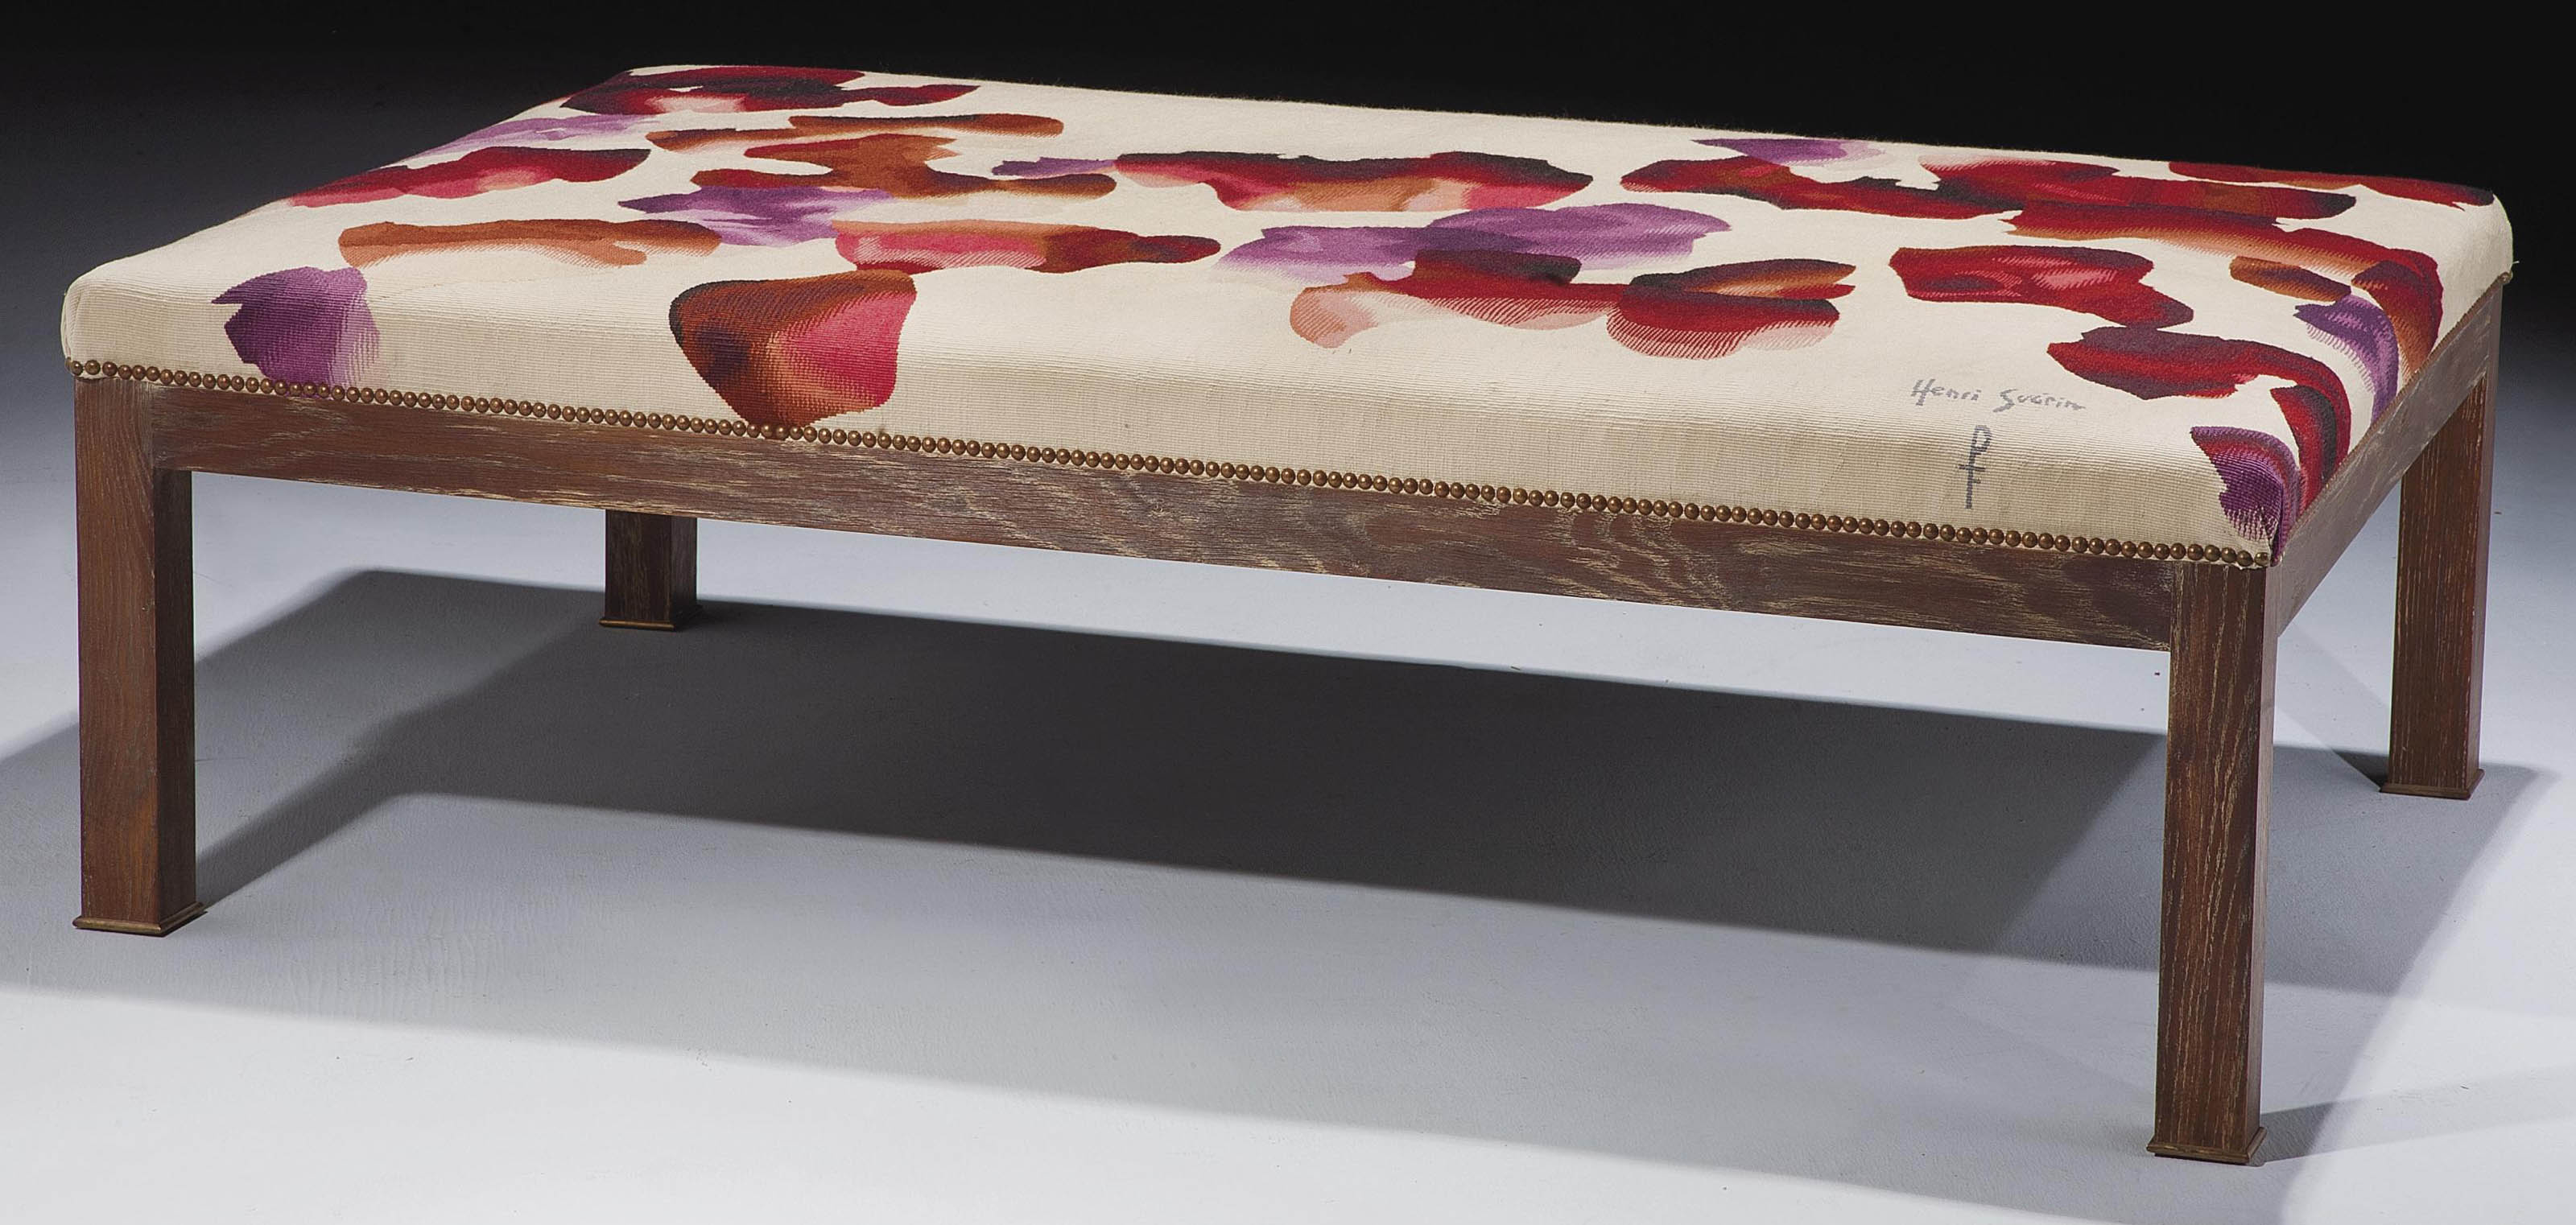 BANQUETTE, VERS 1970